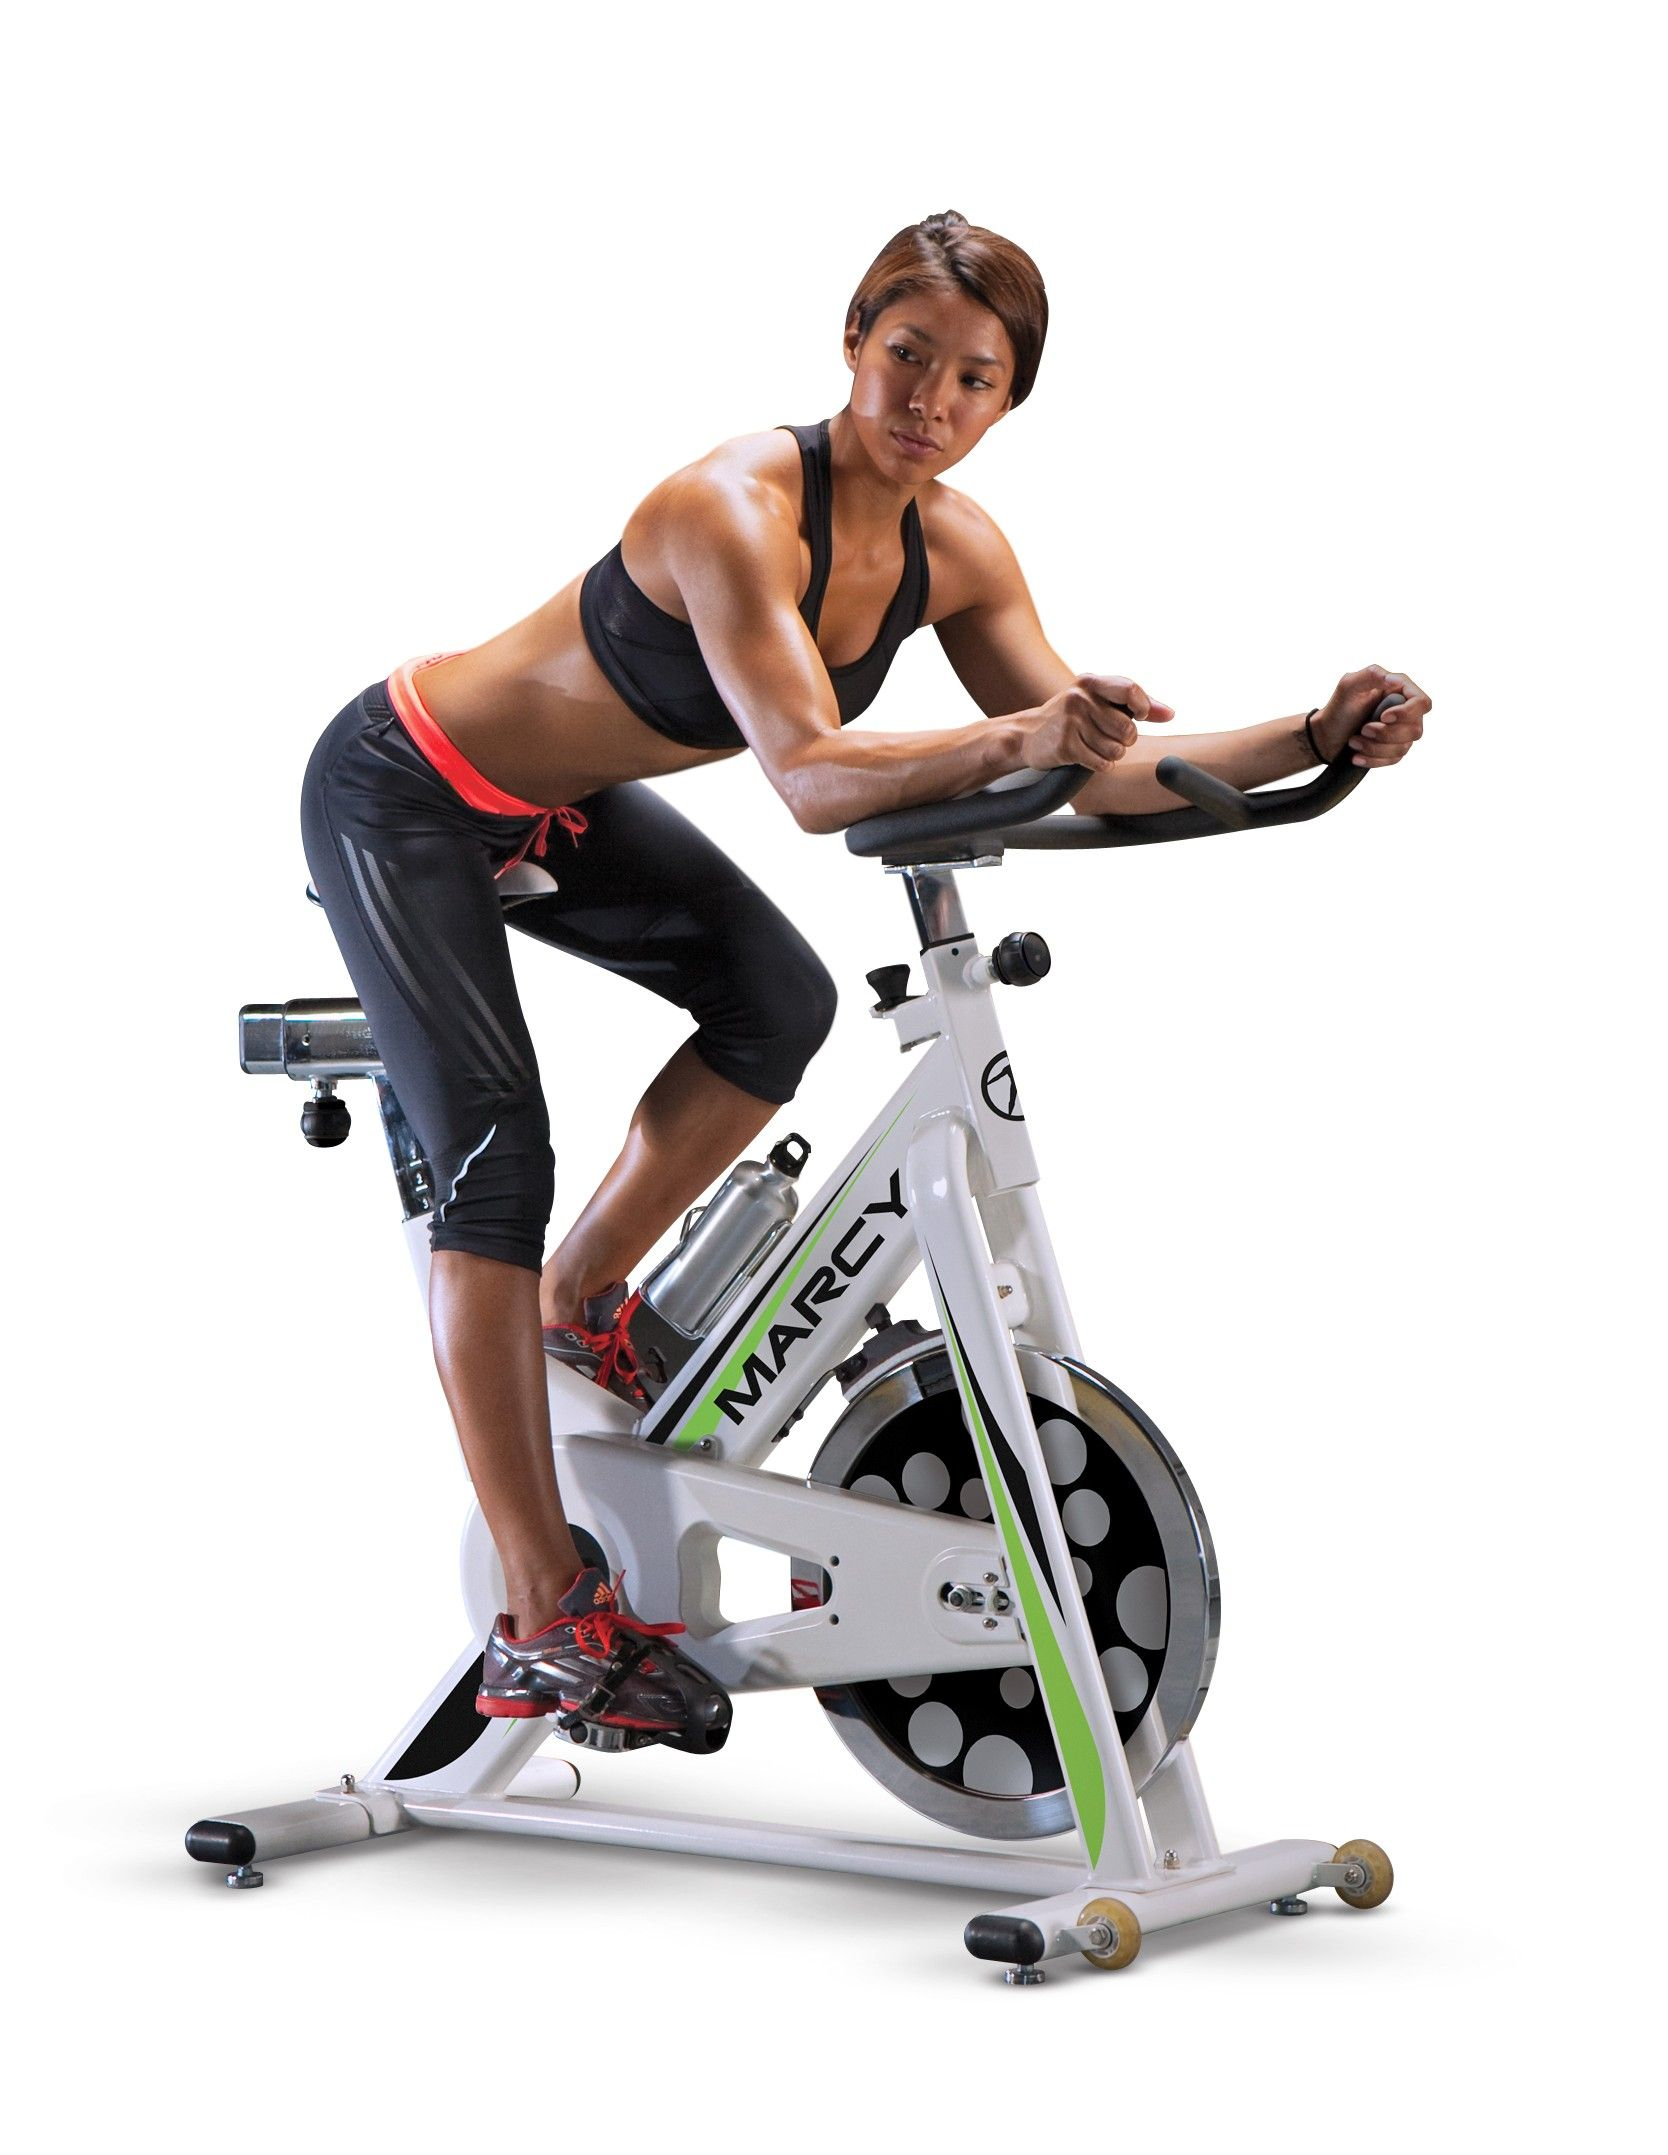 Marcy Deluxe Club Revolution Cycle Nsp 122 Retired Biking Workout Cycling Workout Indoor Training Bike